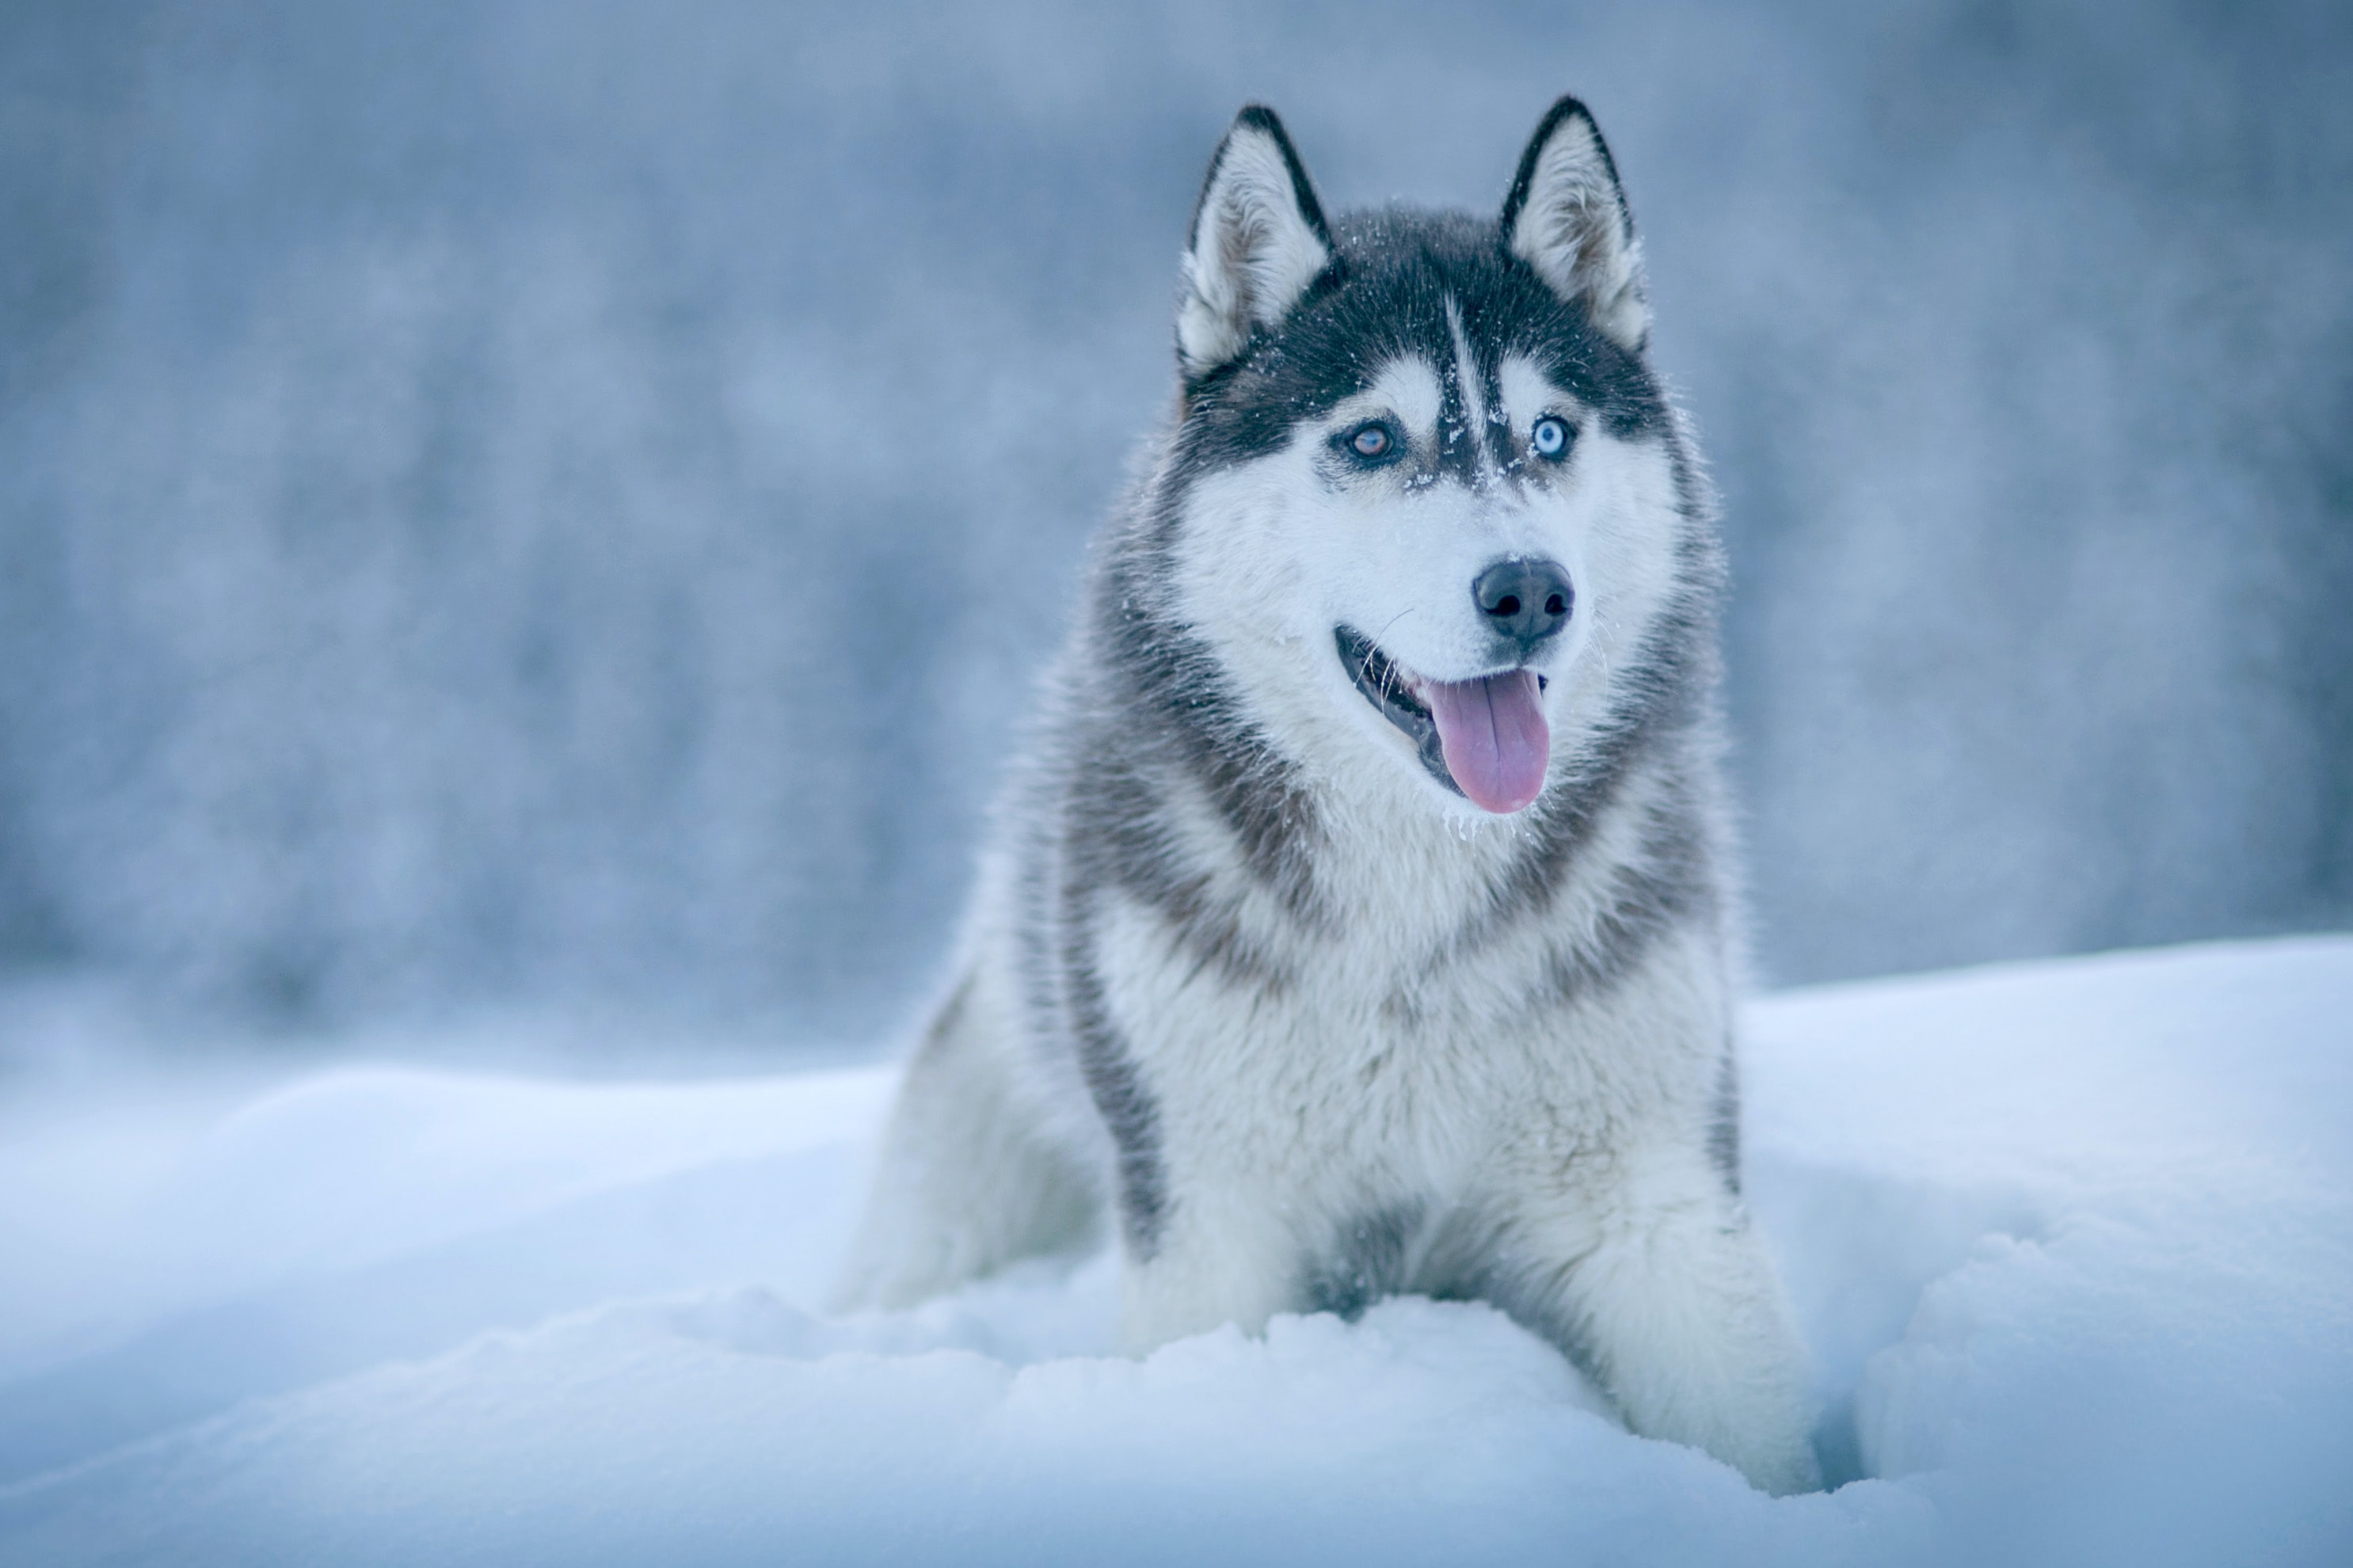 Alaskan Malamute walking on snow field